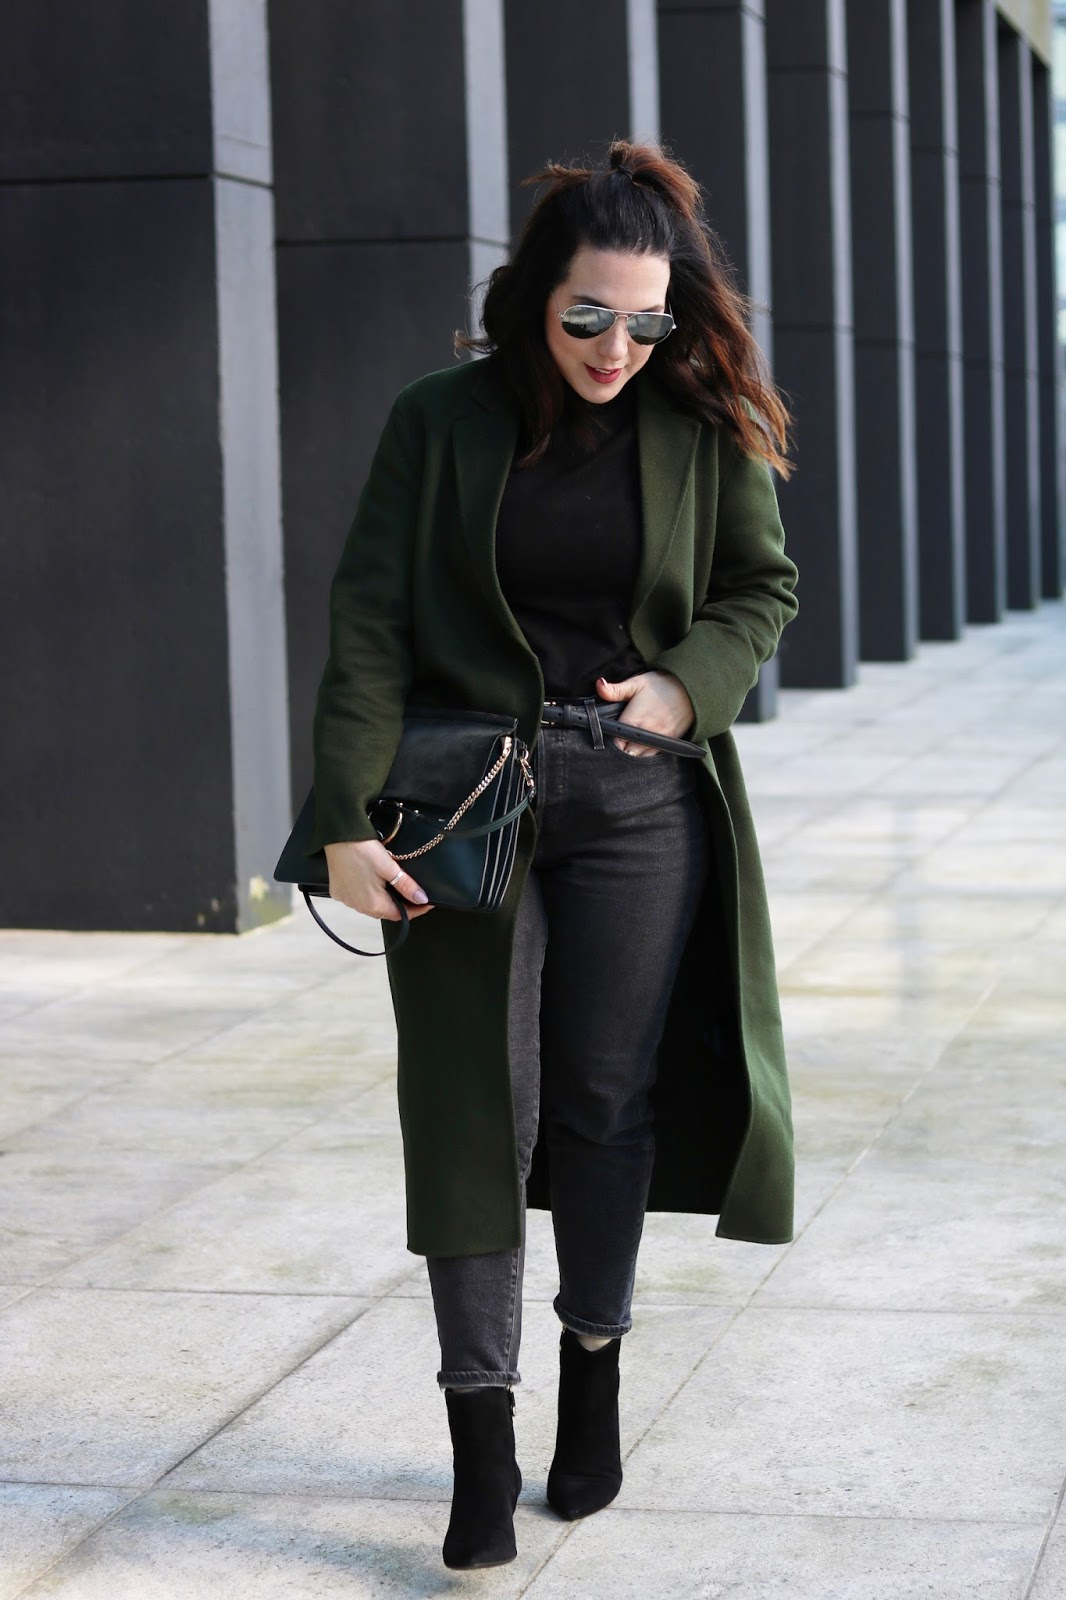 le chateau turtleneck outfit sandro green wool coat levis wedgie jeans geox ankle boots chloe faye bag